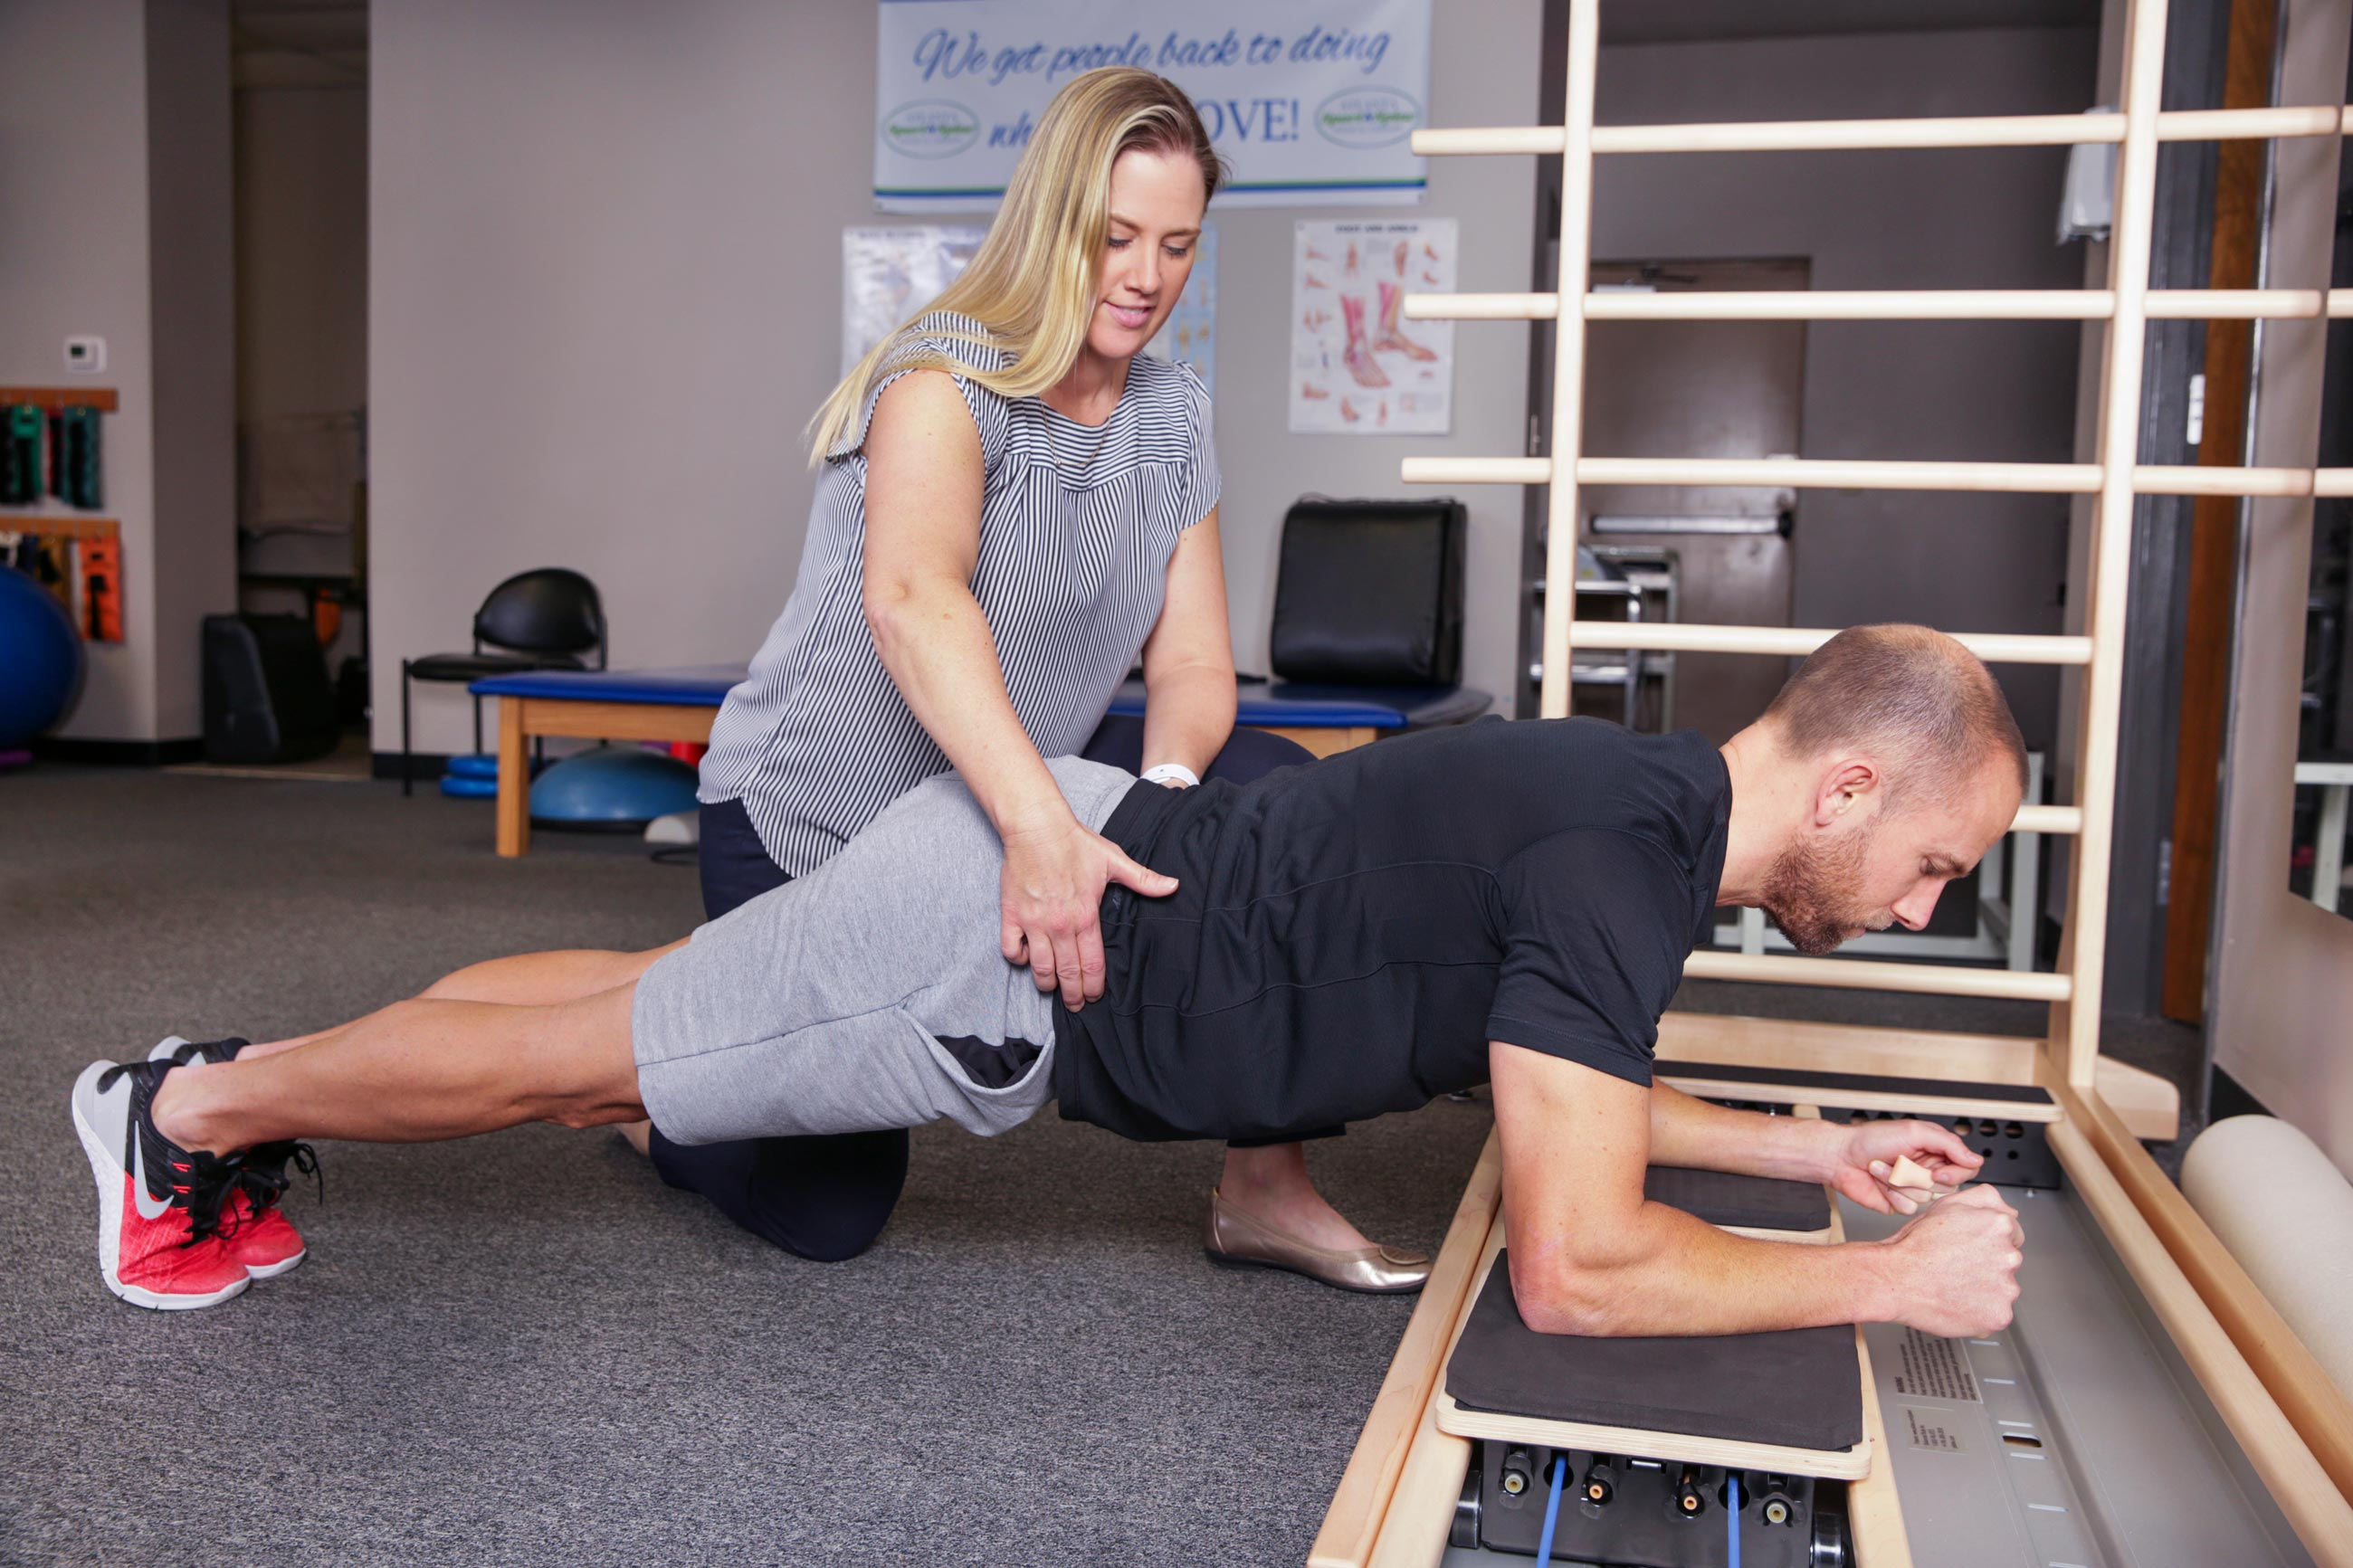 We assist with all patients, athletes, injured, fitness-focused to strengthen using pilates